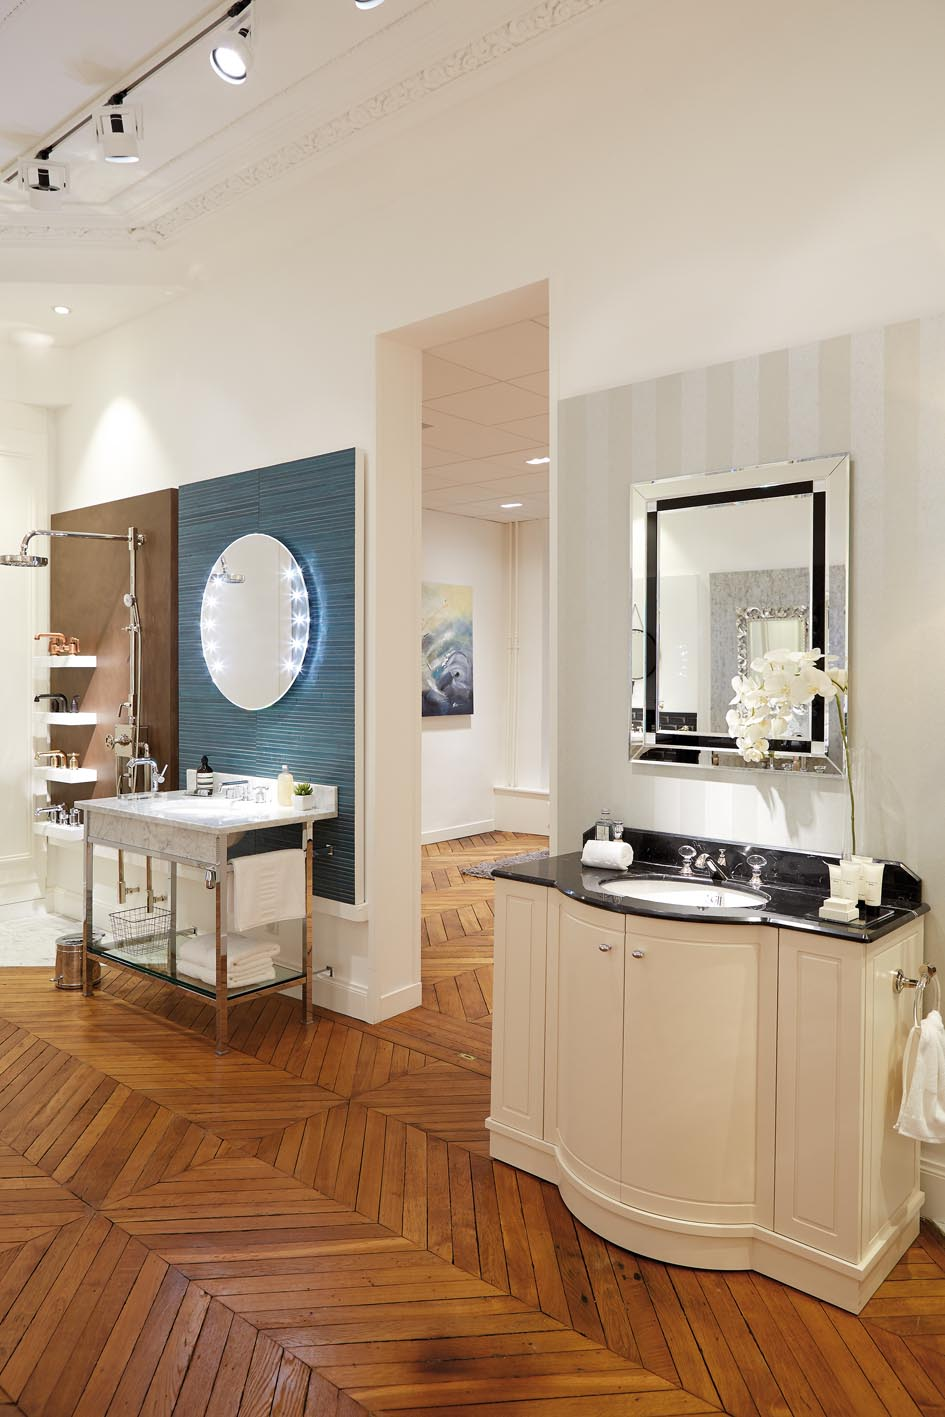 Apartment 152 showroom by THG Paris - The Kitchen and Bathroom Blog